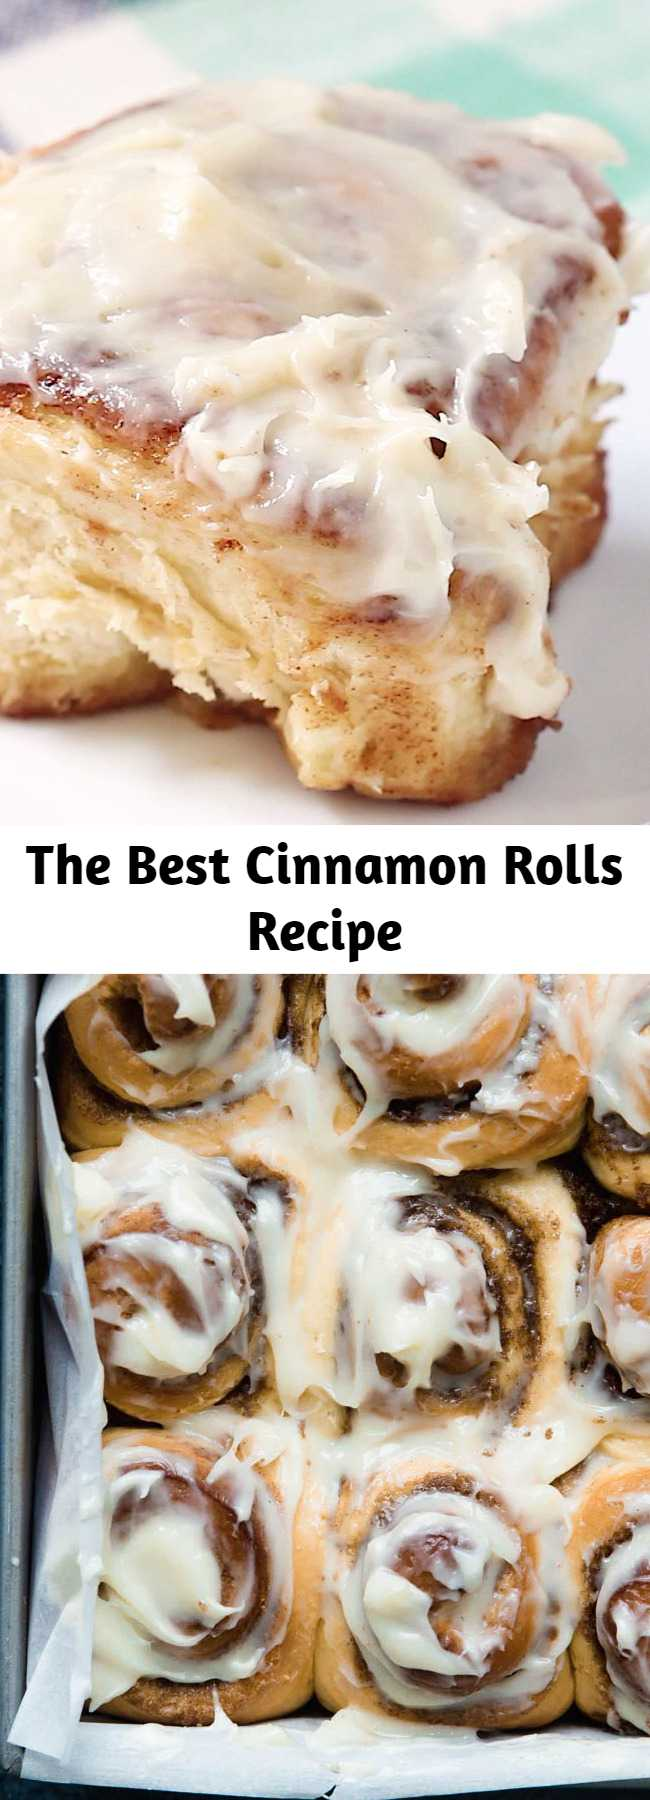 The Best Cinnamon Rolls Recipe - The BEST cinnamon rolls in the WORLD. Big, fluffy, soft and absolutely delicious. You'll never go back to any other recipe once you try this one! This cinnamon roll recipe includes options to make them overnight or ahead of time and even freeze them.